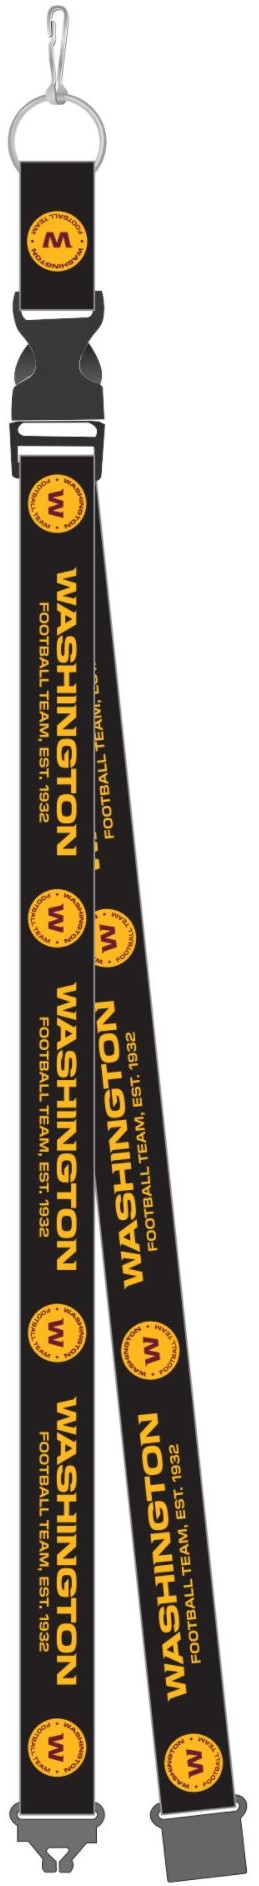 WASHINGTON FOOTBALL TEAM BLACK LANYARD